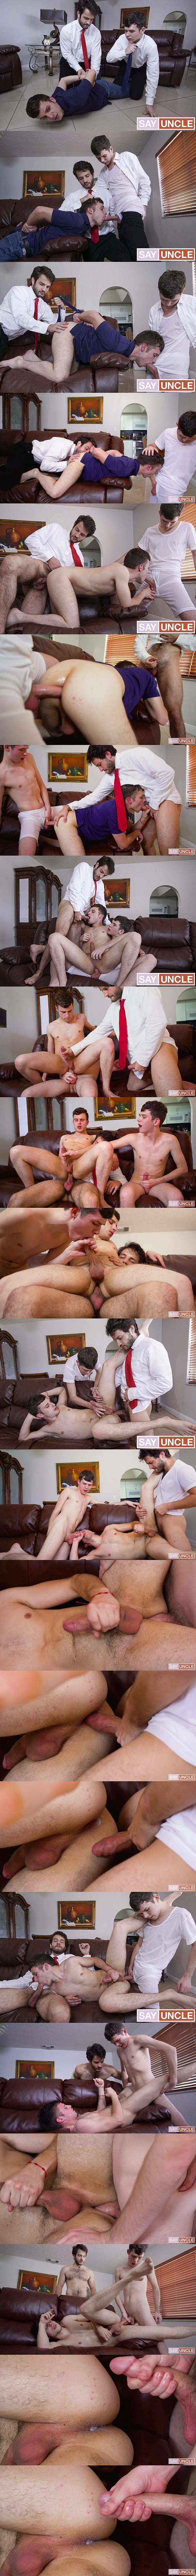 Missionaryboys - hung twink Dakota Lovell and sexy bearded dude Dante Drackis tag team and bareback Jesse Avalon before they creampie Jesse in Physical Penitence 02